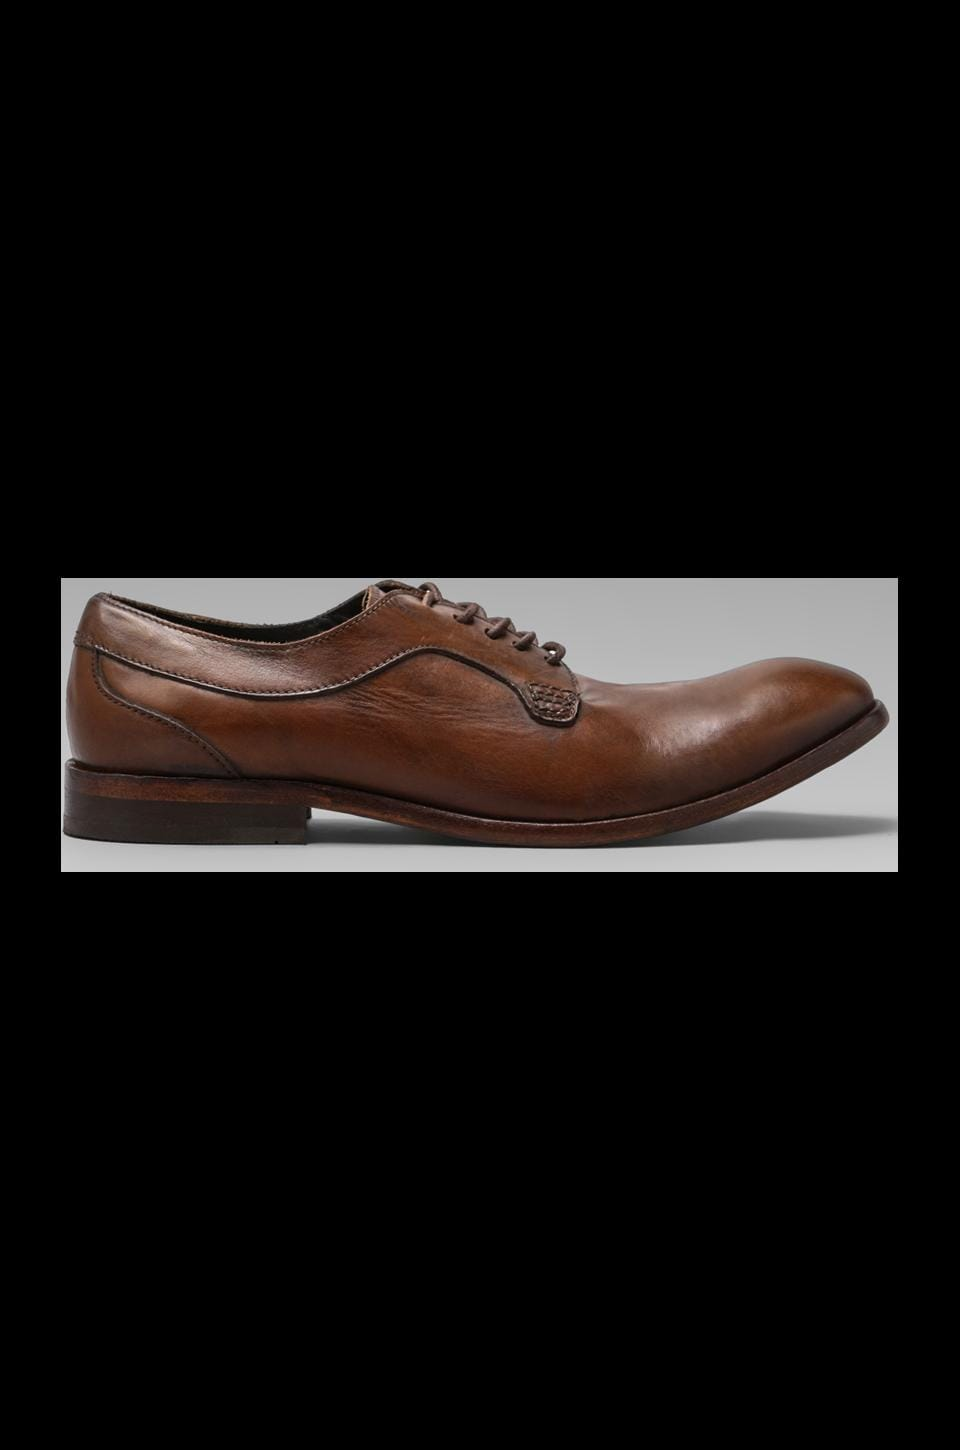 H by Hudson Gould Leather Oxford in Tan